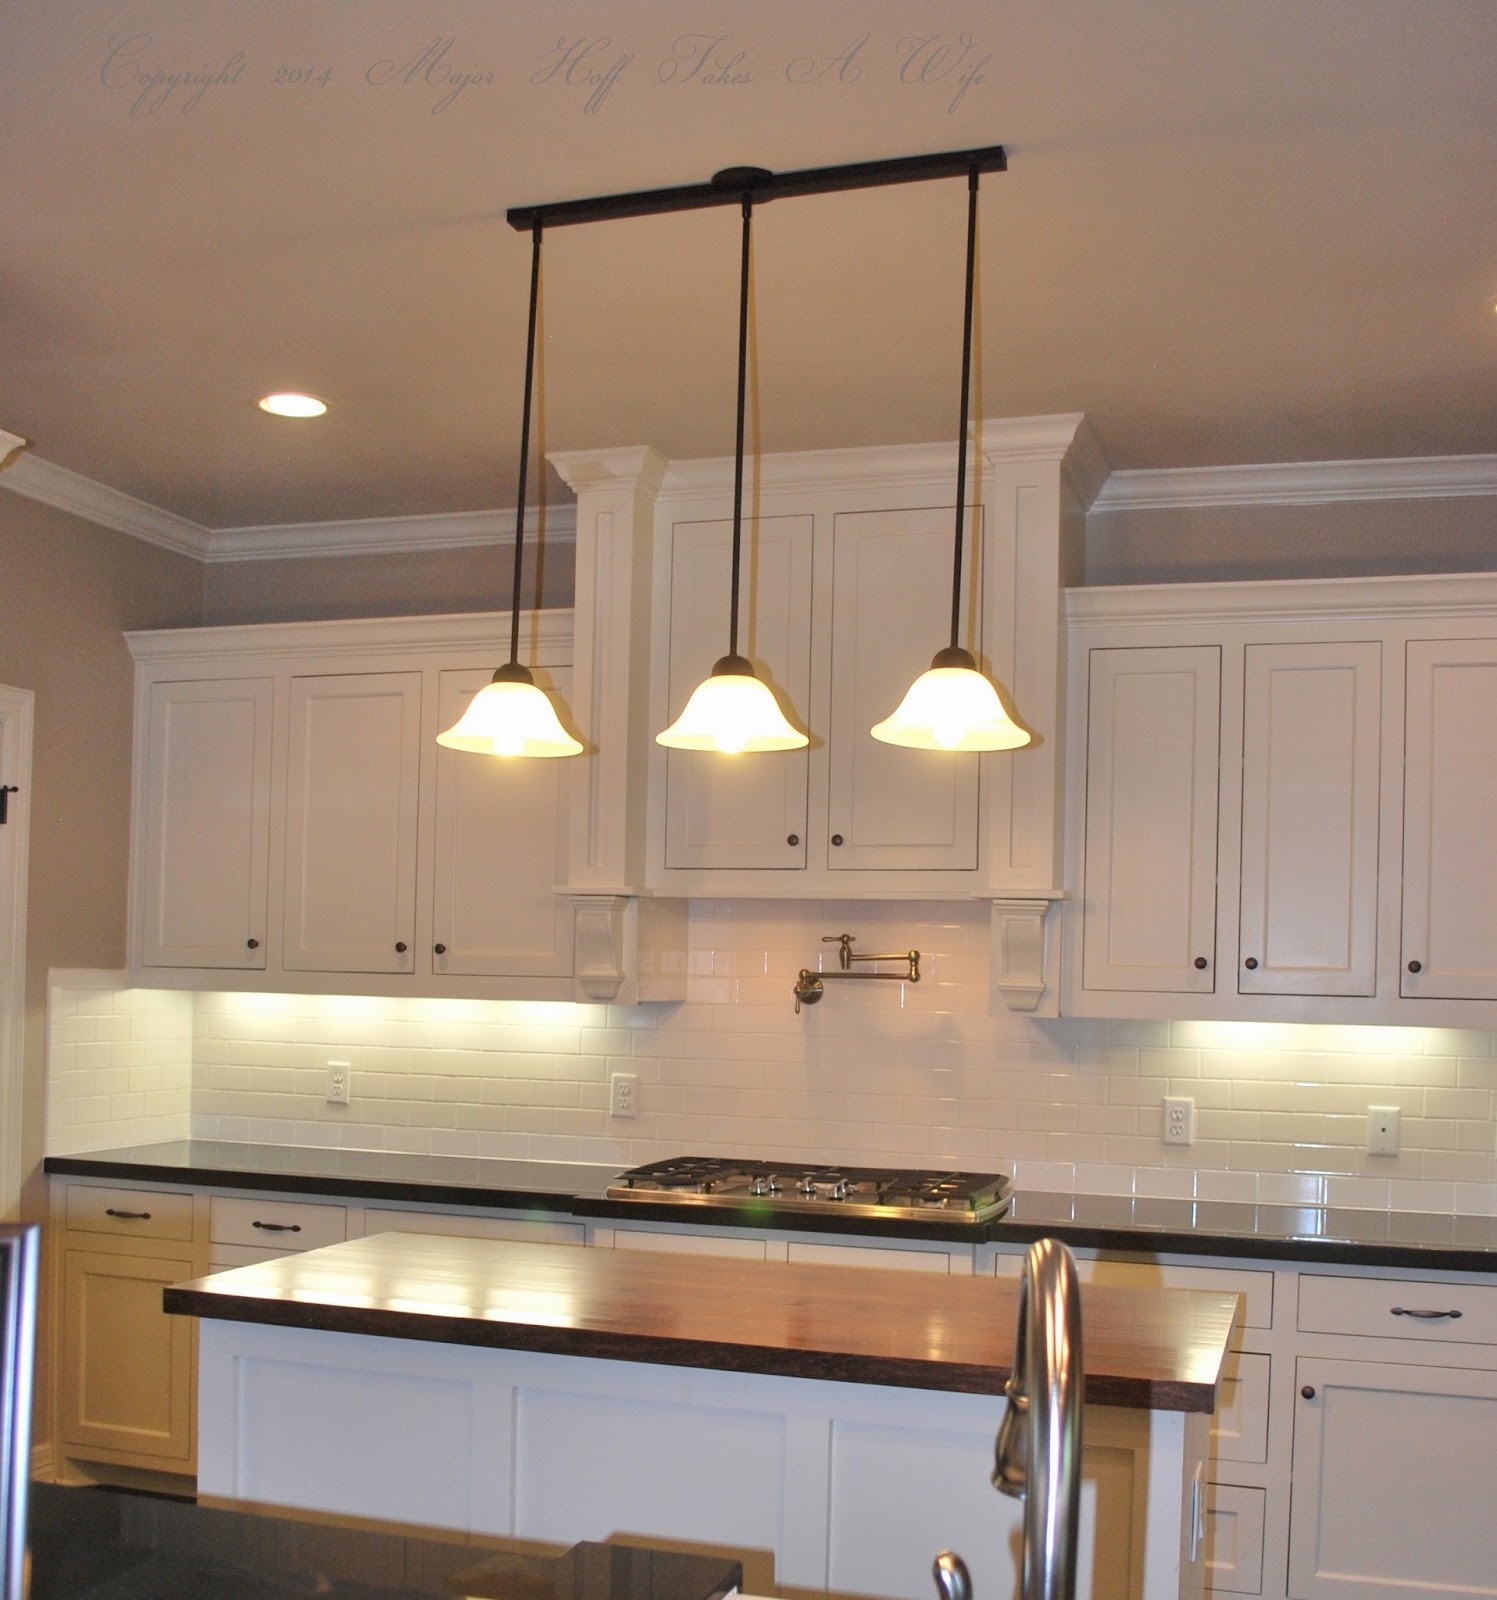 The Block Kitchen Pendant Lights: Tour It Thursday: Modern Twist On Traditional Designs